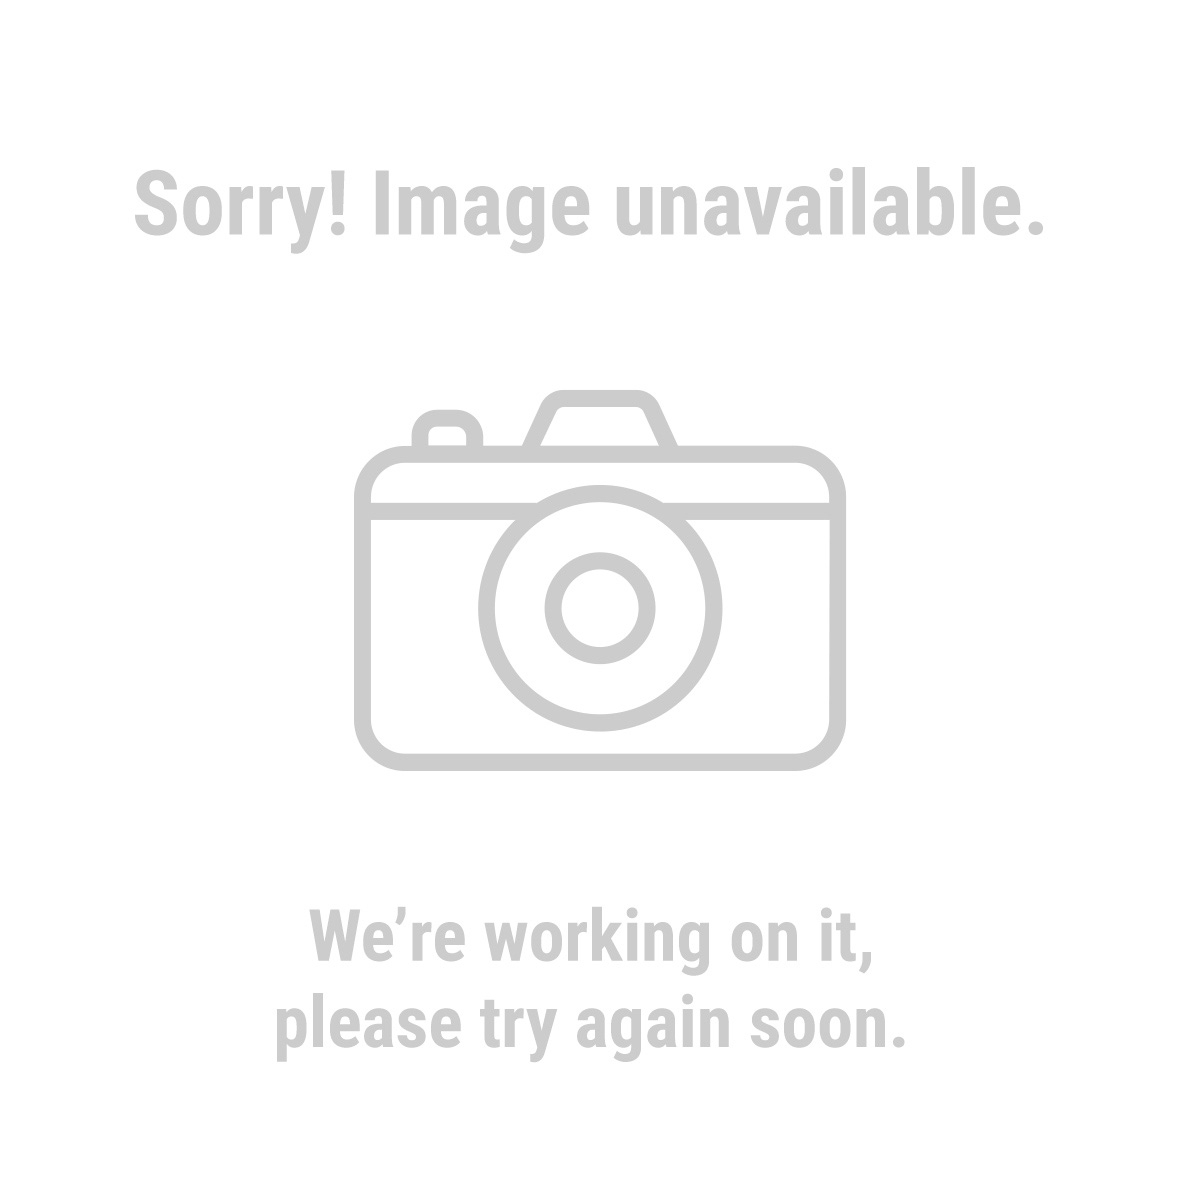 Harbor Freight Tools 3338 Mechanic's Roller Seat